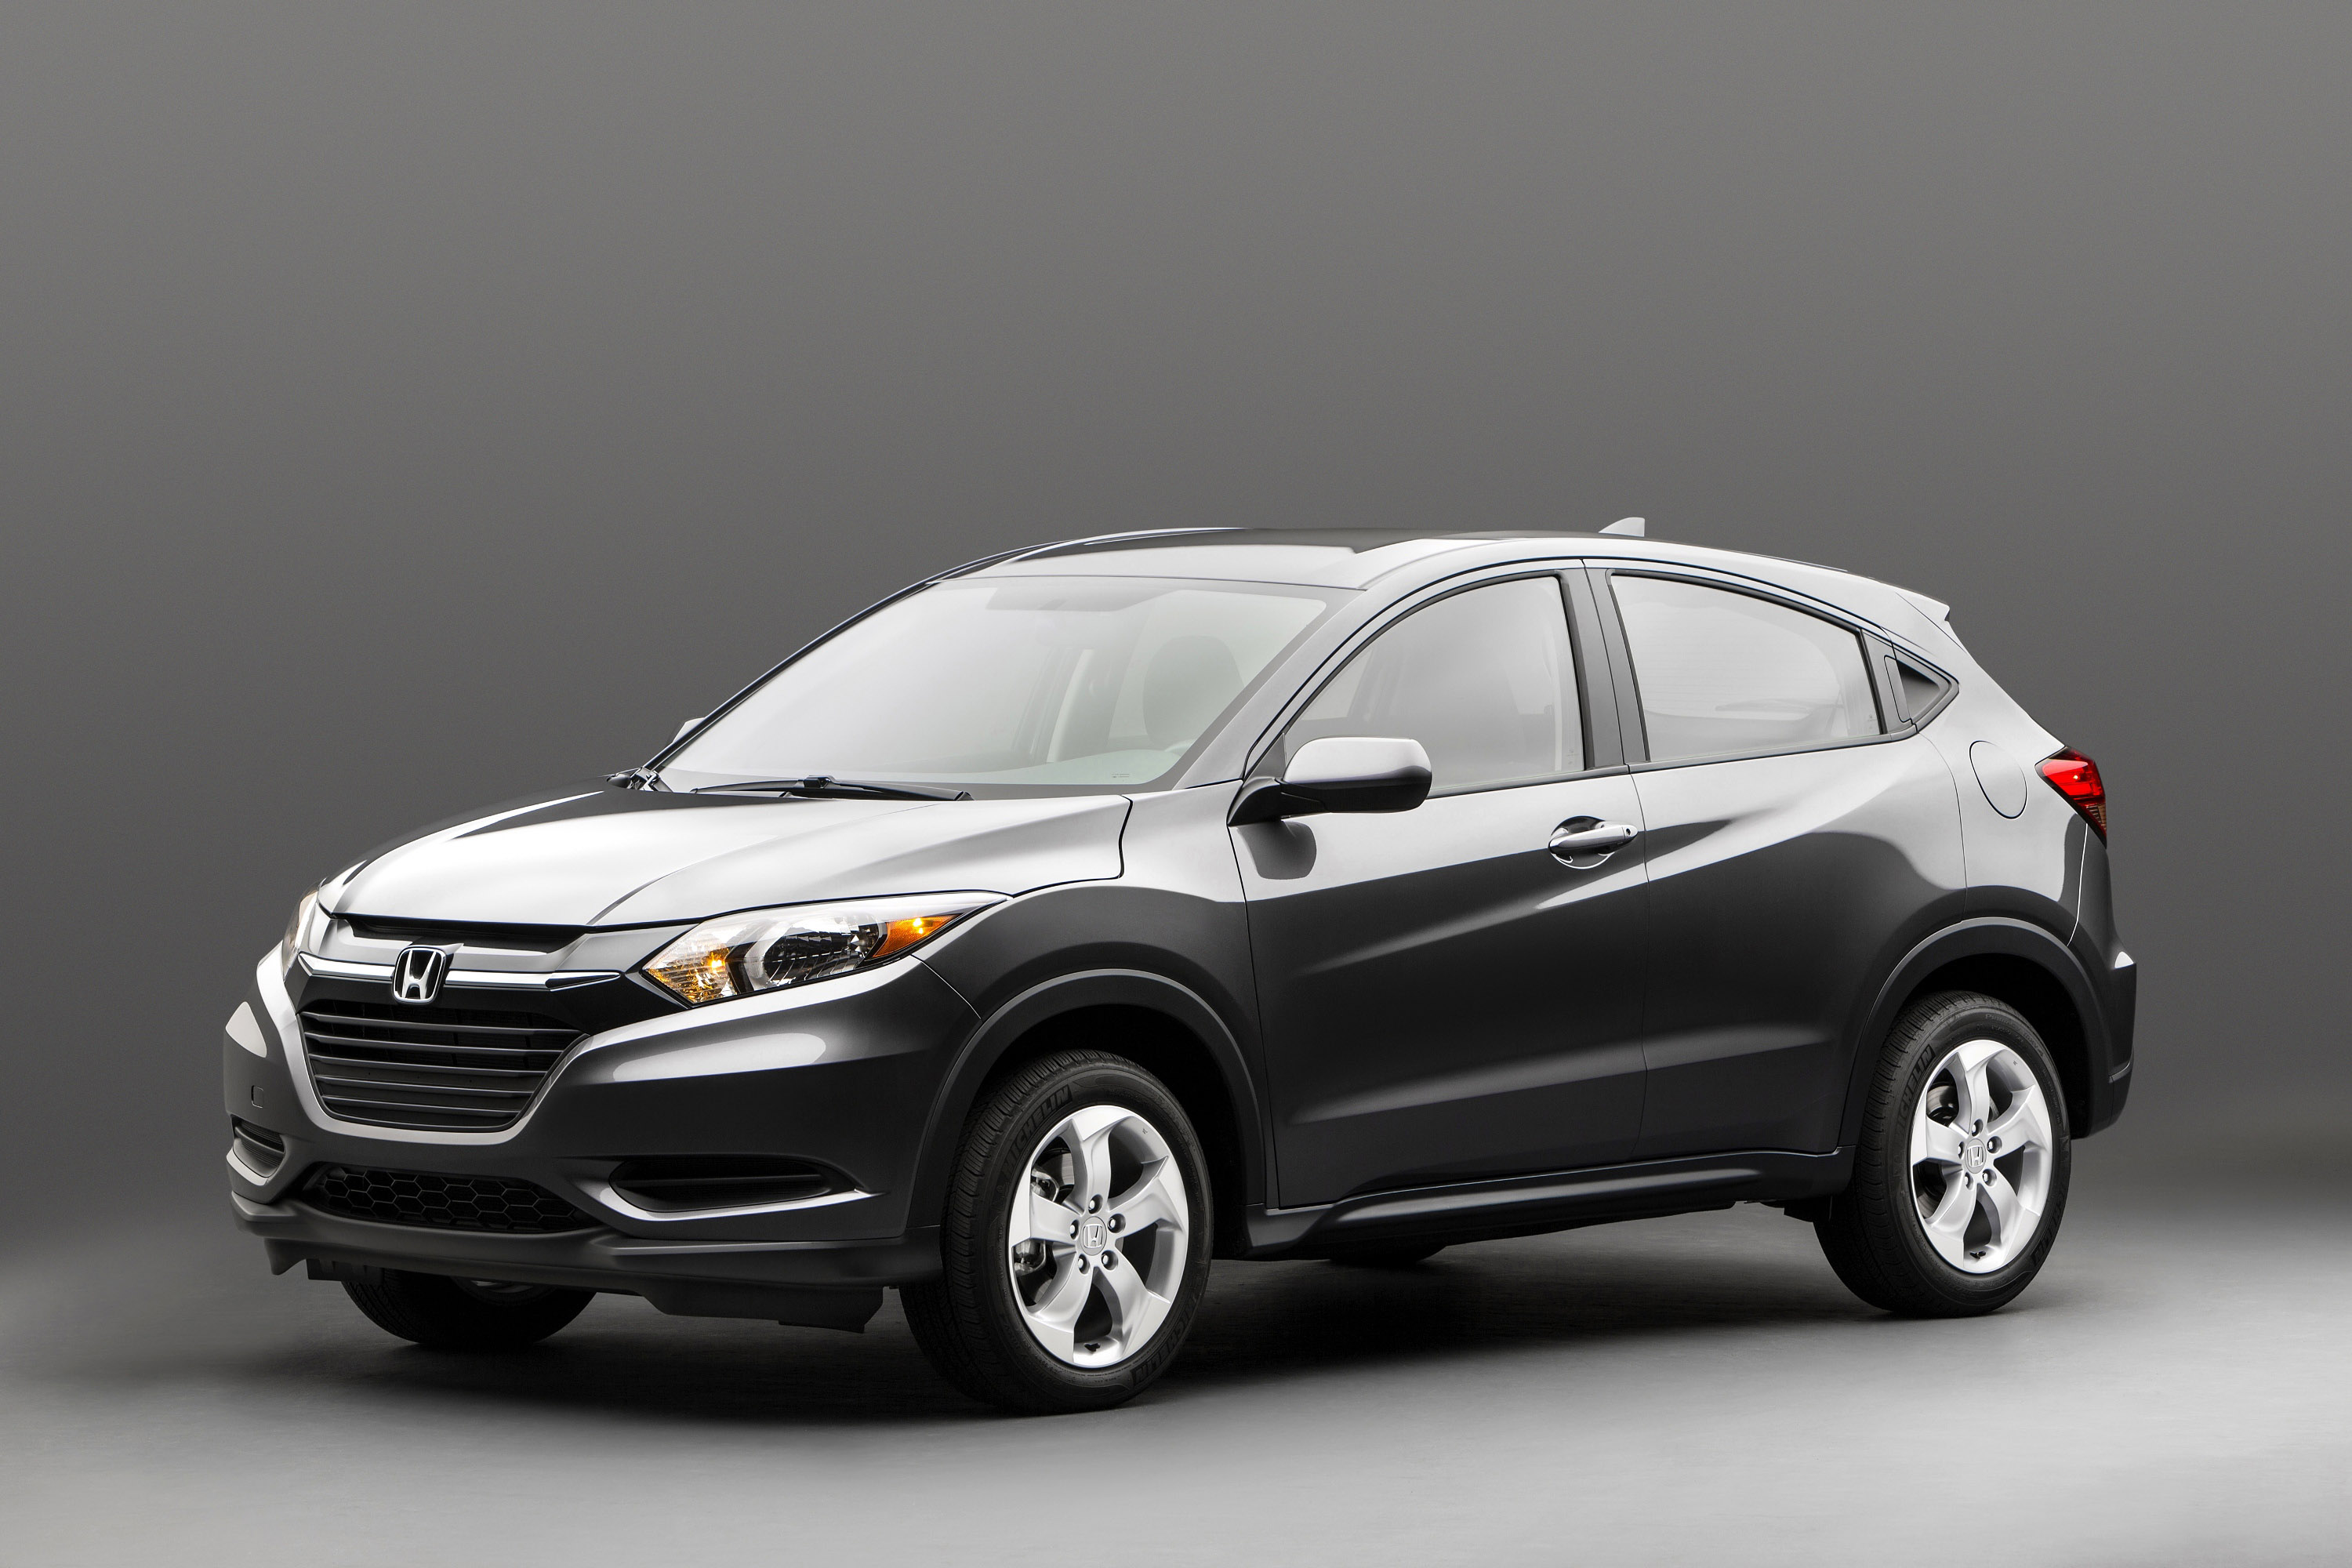 2015 honda hr v suv first official images